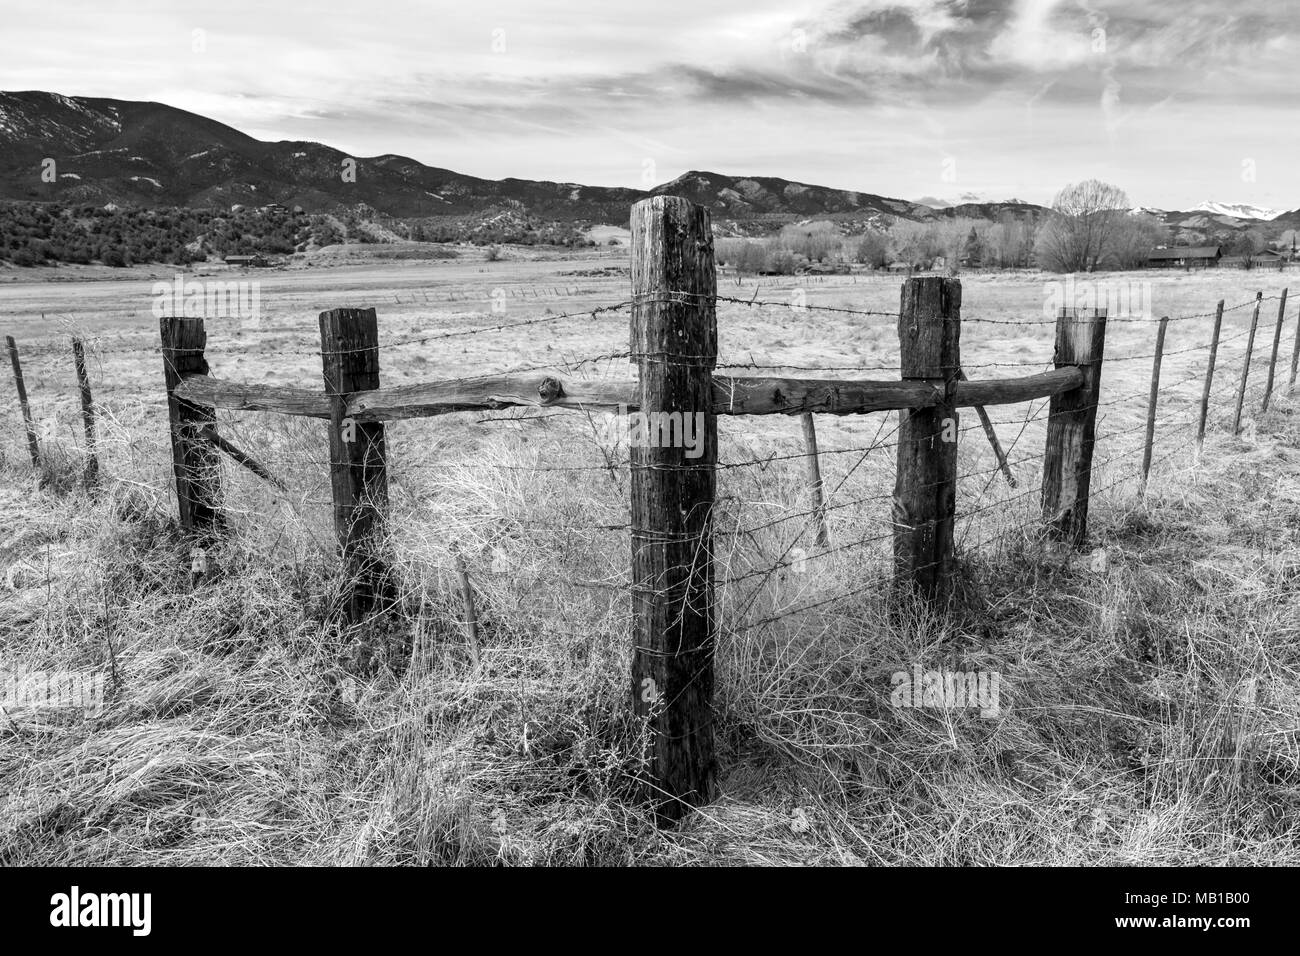 Infrared; black & white view of wooden fencepost and barbed wire; Vandaveer Ranch; Salida; Colorado; USA - Stock Image